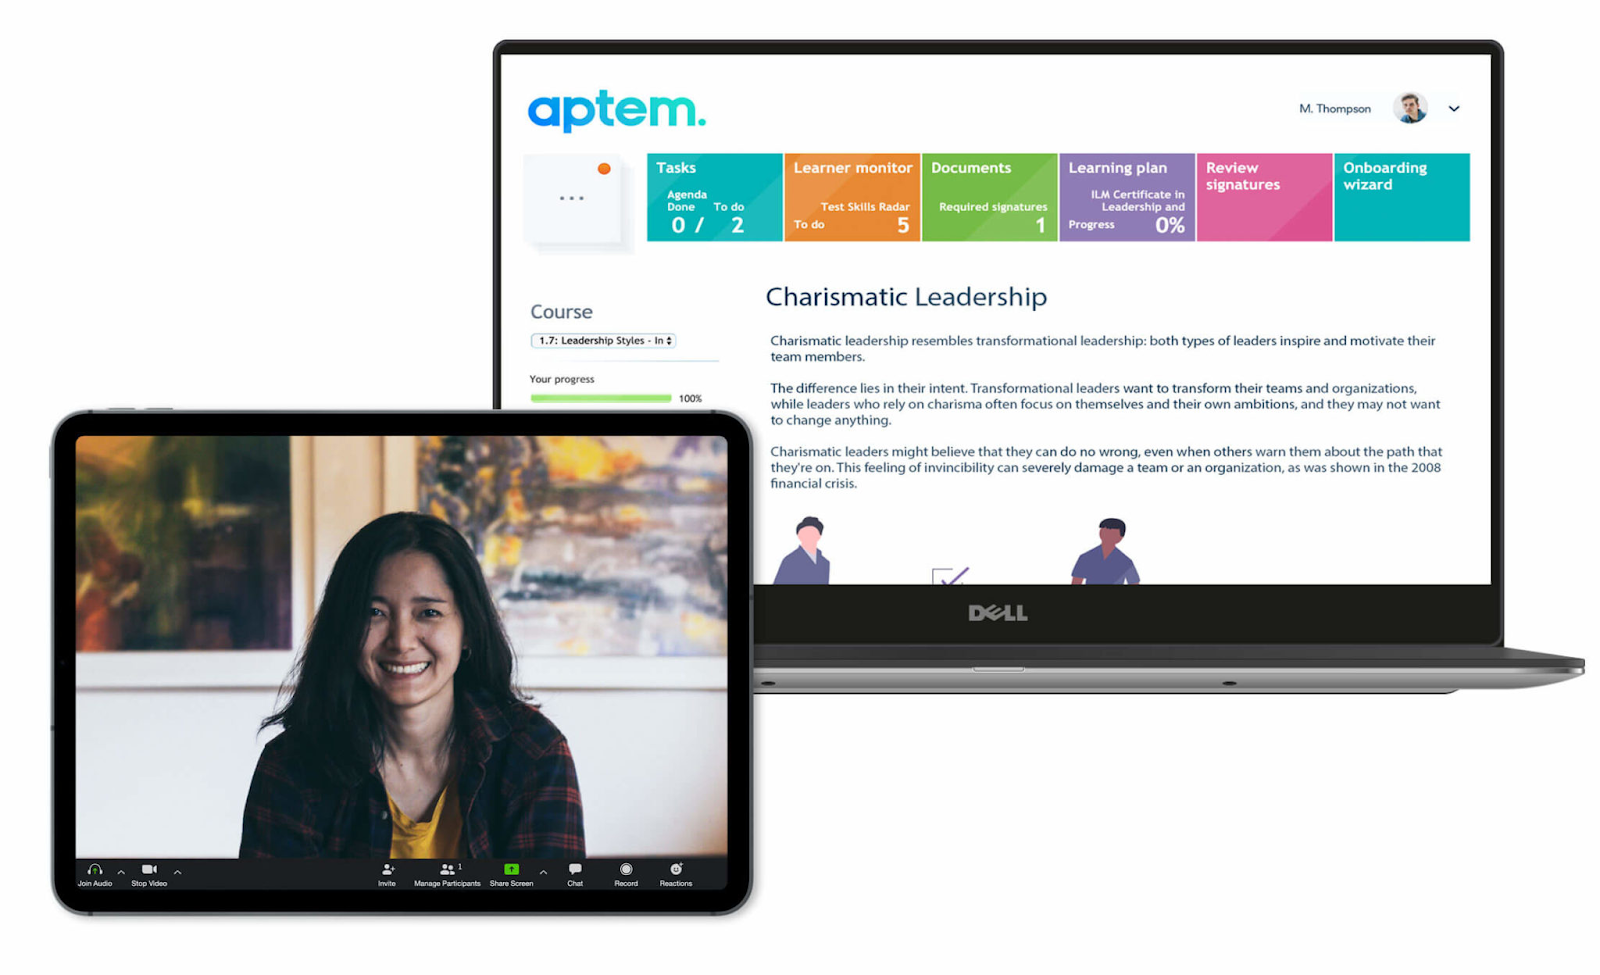 View of the Aptem Dashboard on a laptop.